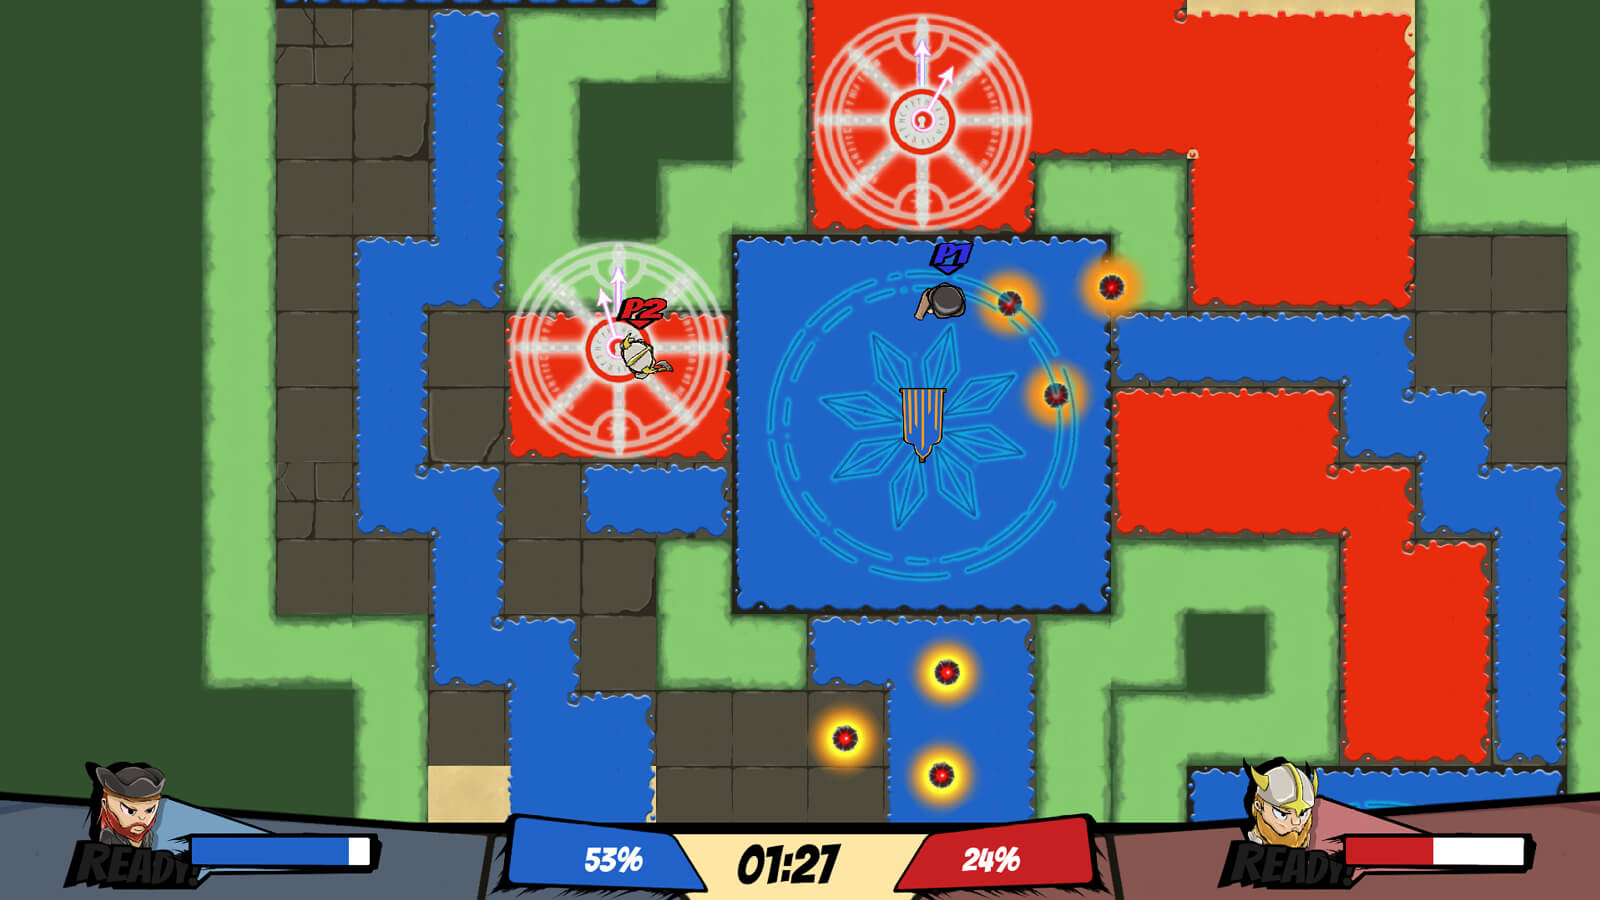 Top down screenshot of match between the Pirate and Viking in progress. Tiles are painted blue, red, and green